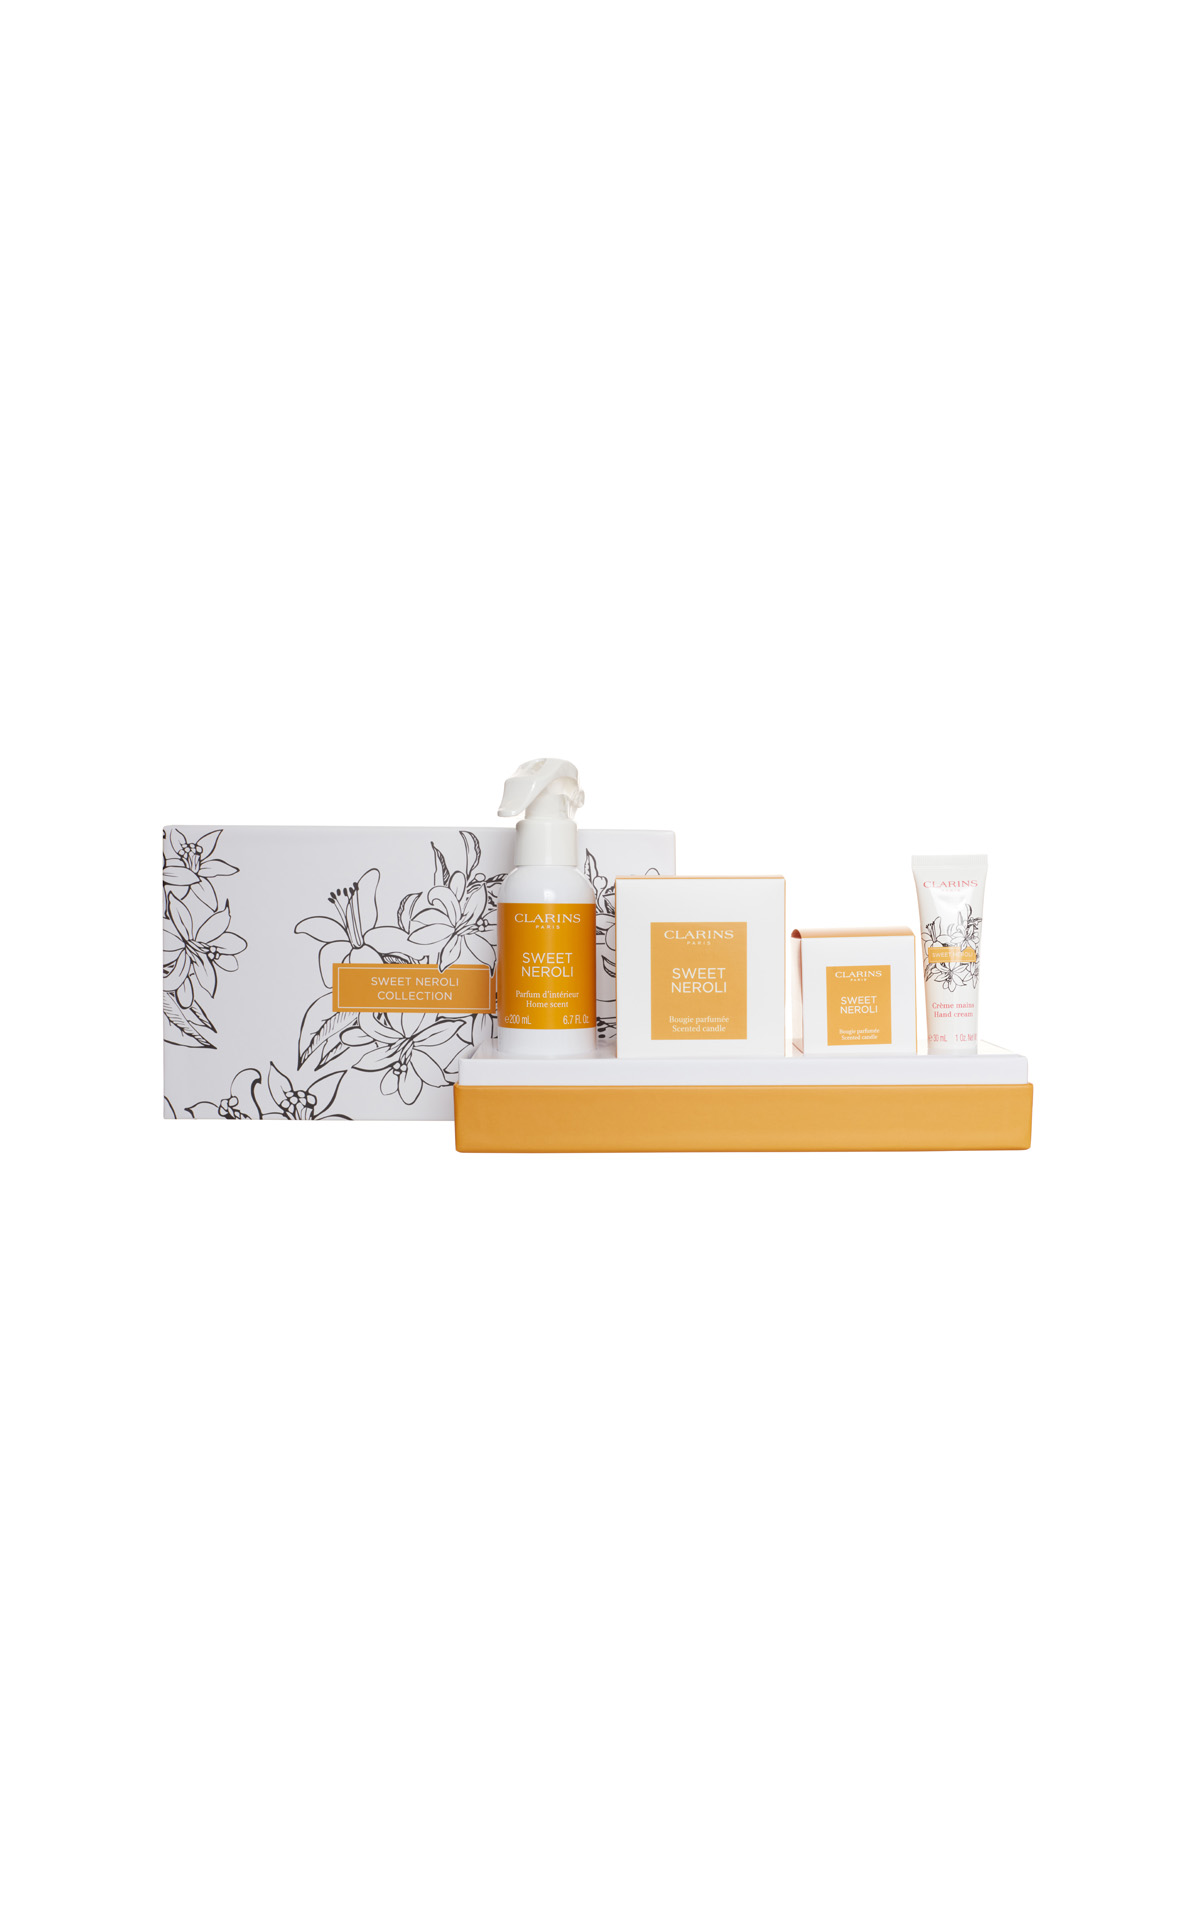 Clarins Home neroli collection from Bicester Village